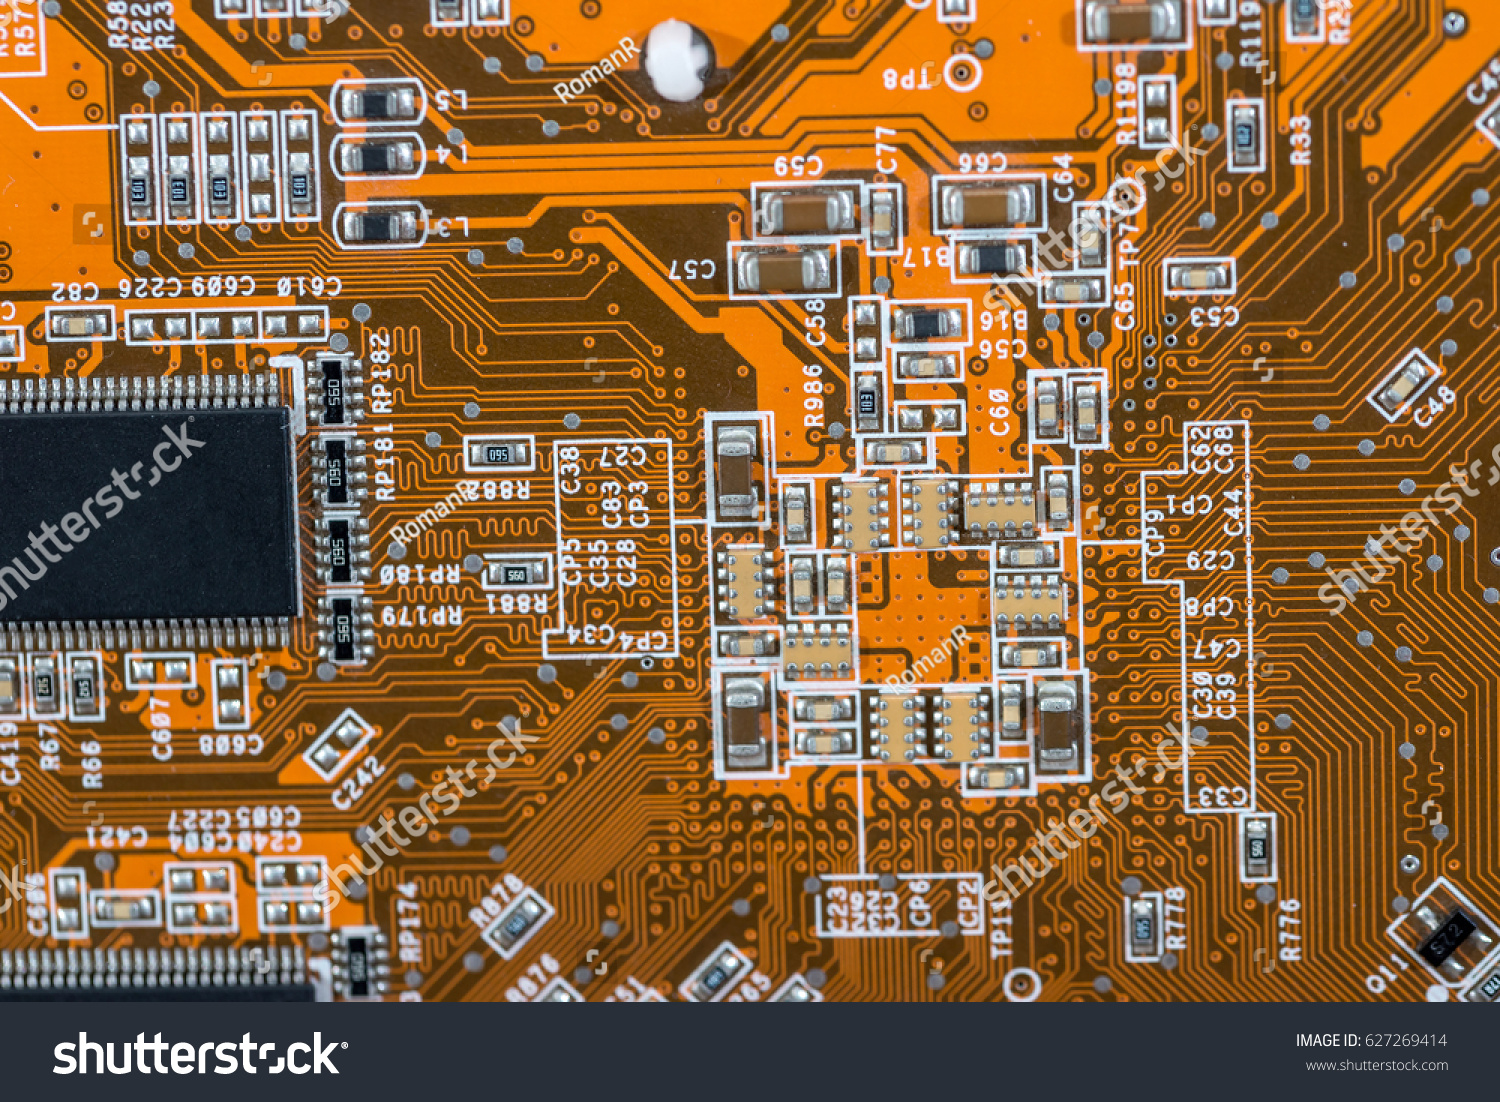 Back Side Old Red Circuit Board Stock Photo Edit Now 627269414 Royalty Free Image Of Background From Close Up A